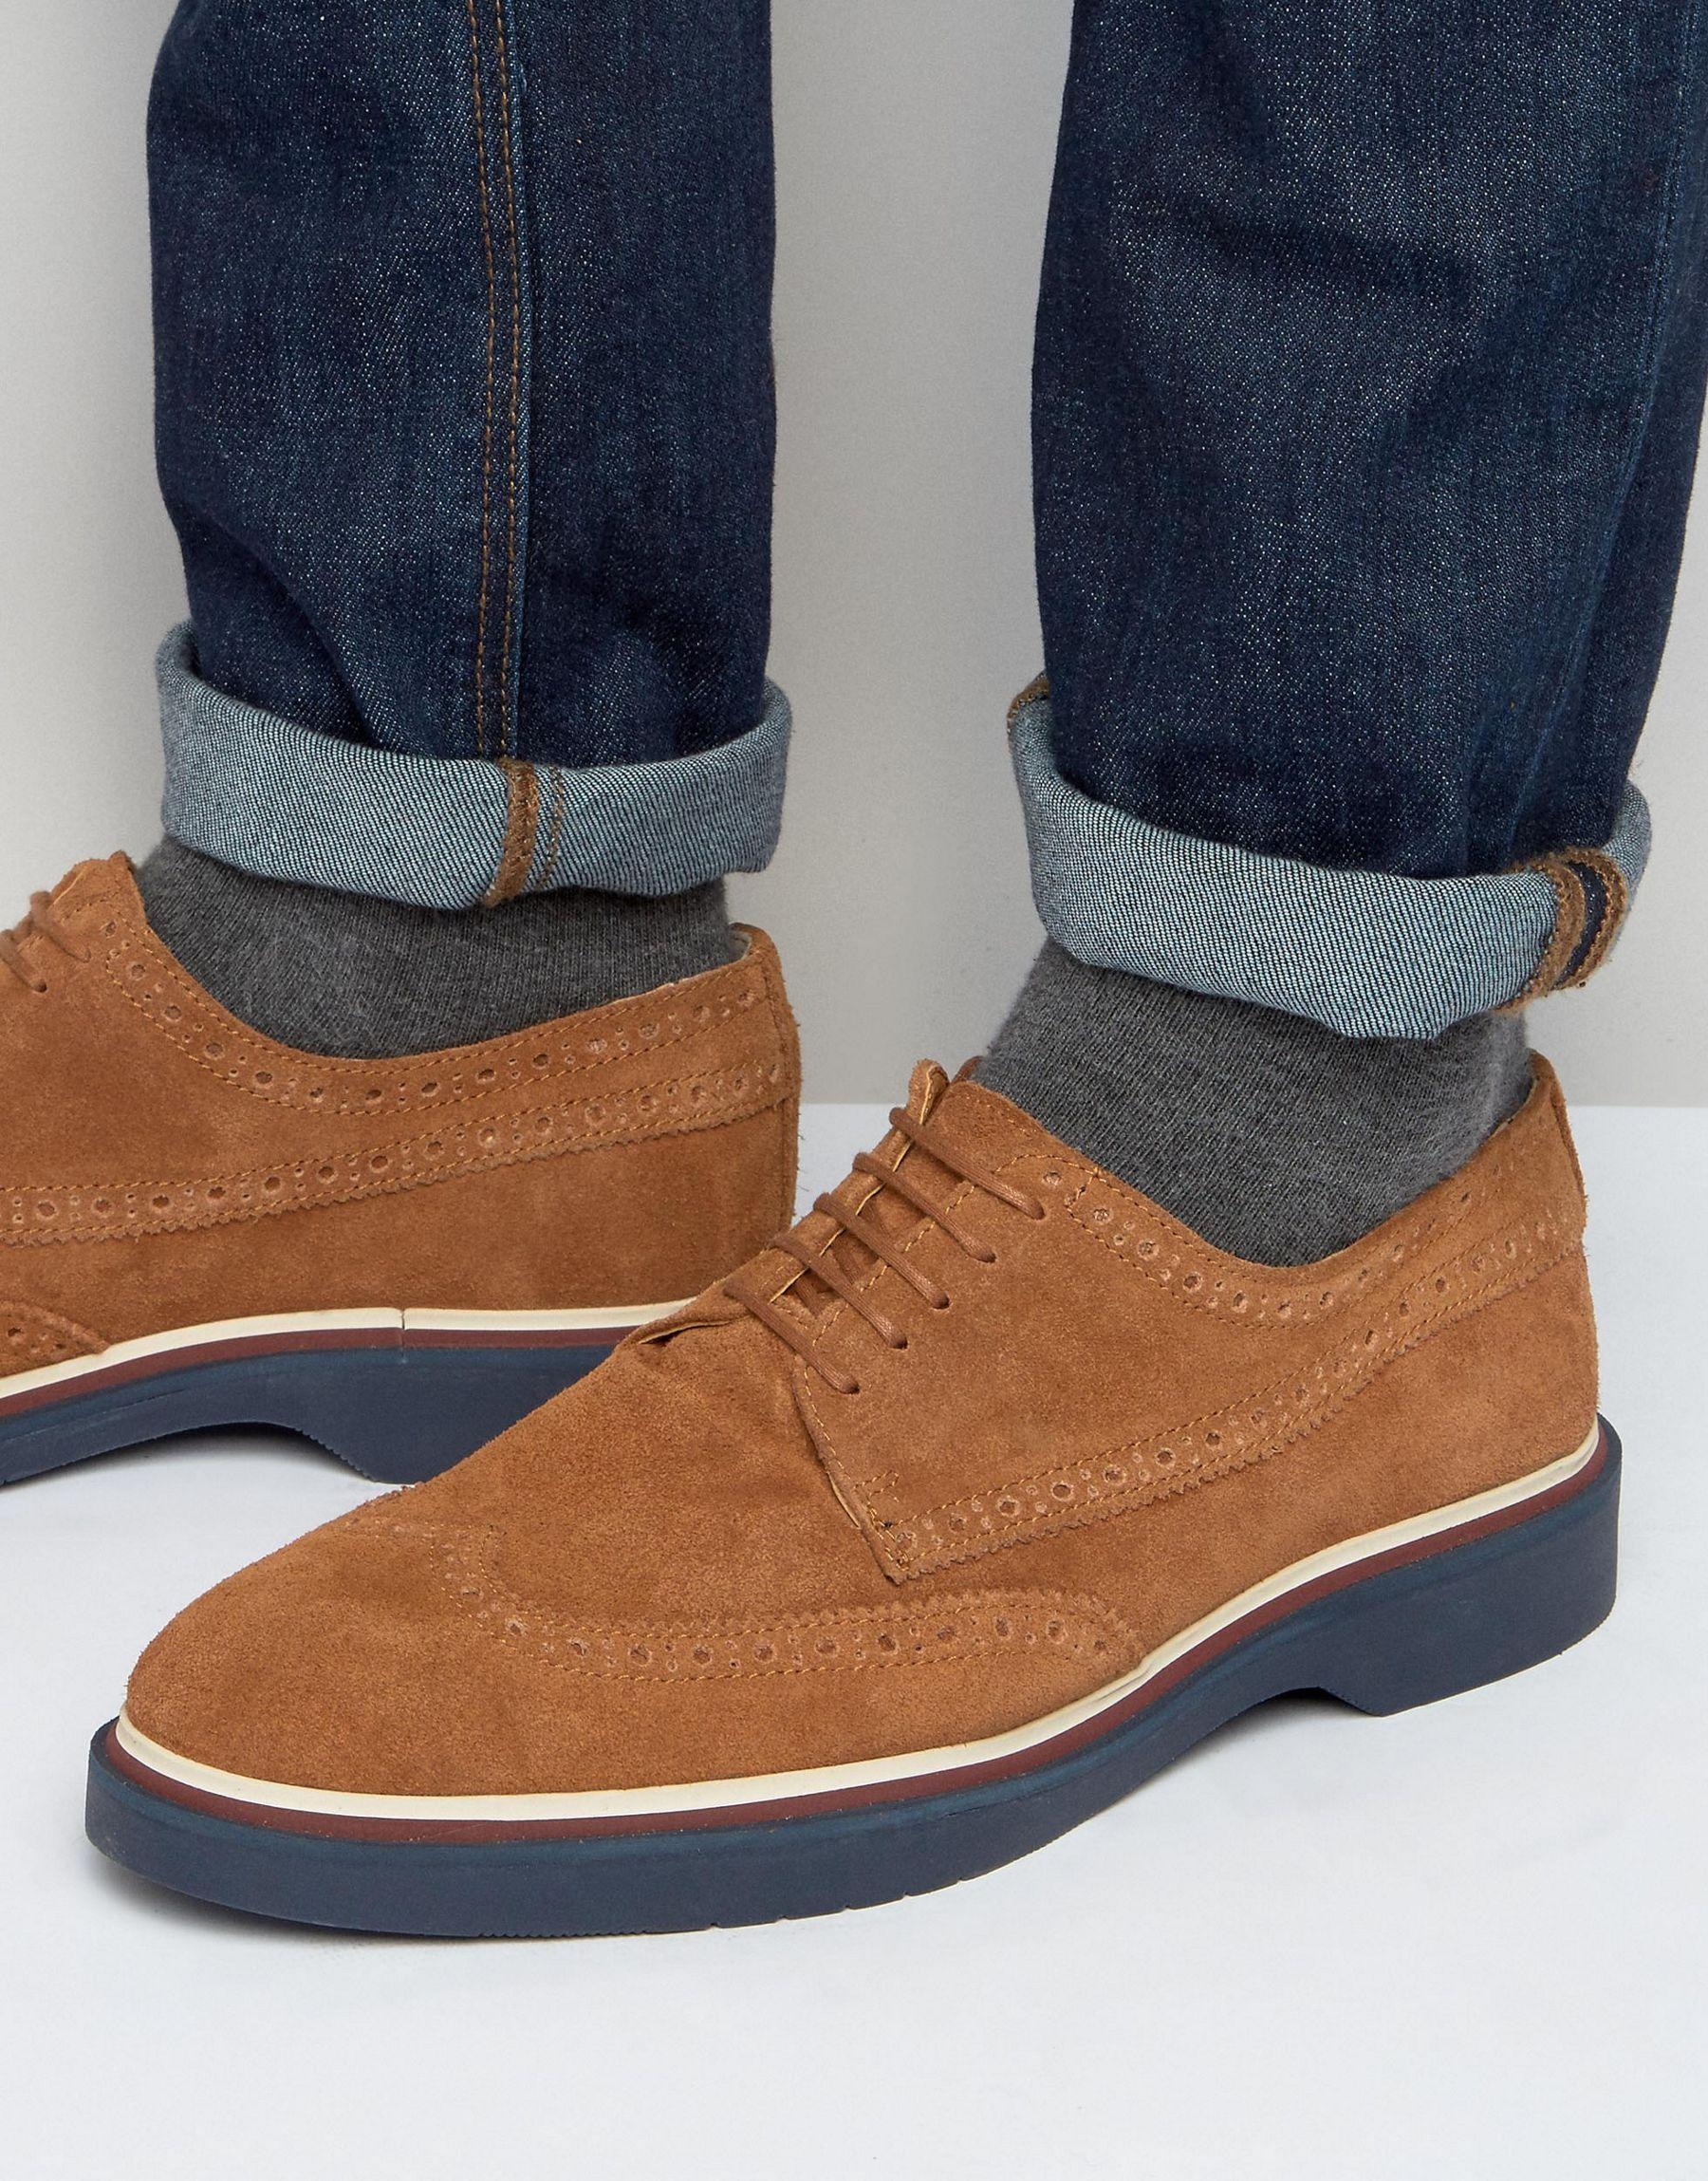 asos brogue shoes in suede with wedge sole in